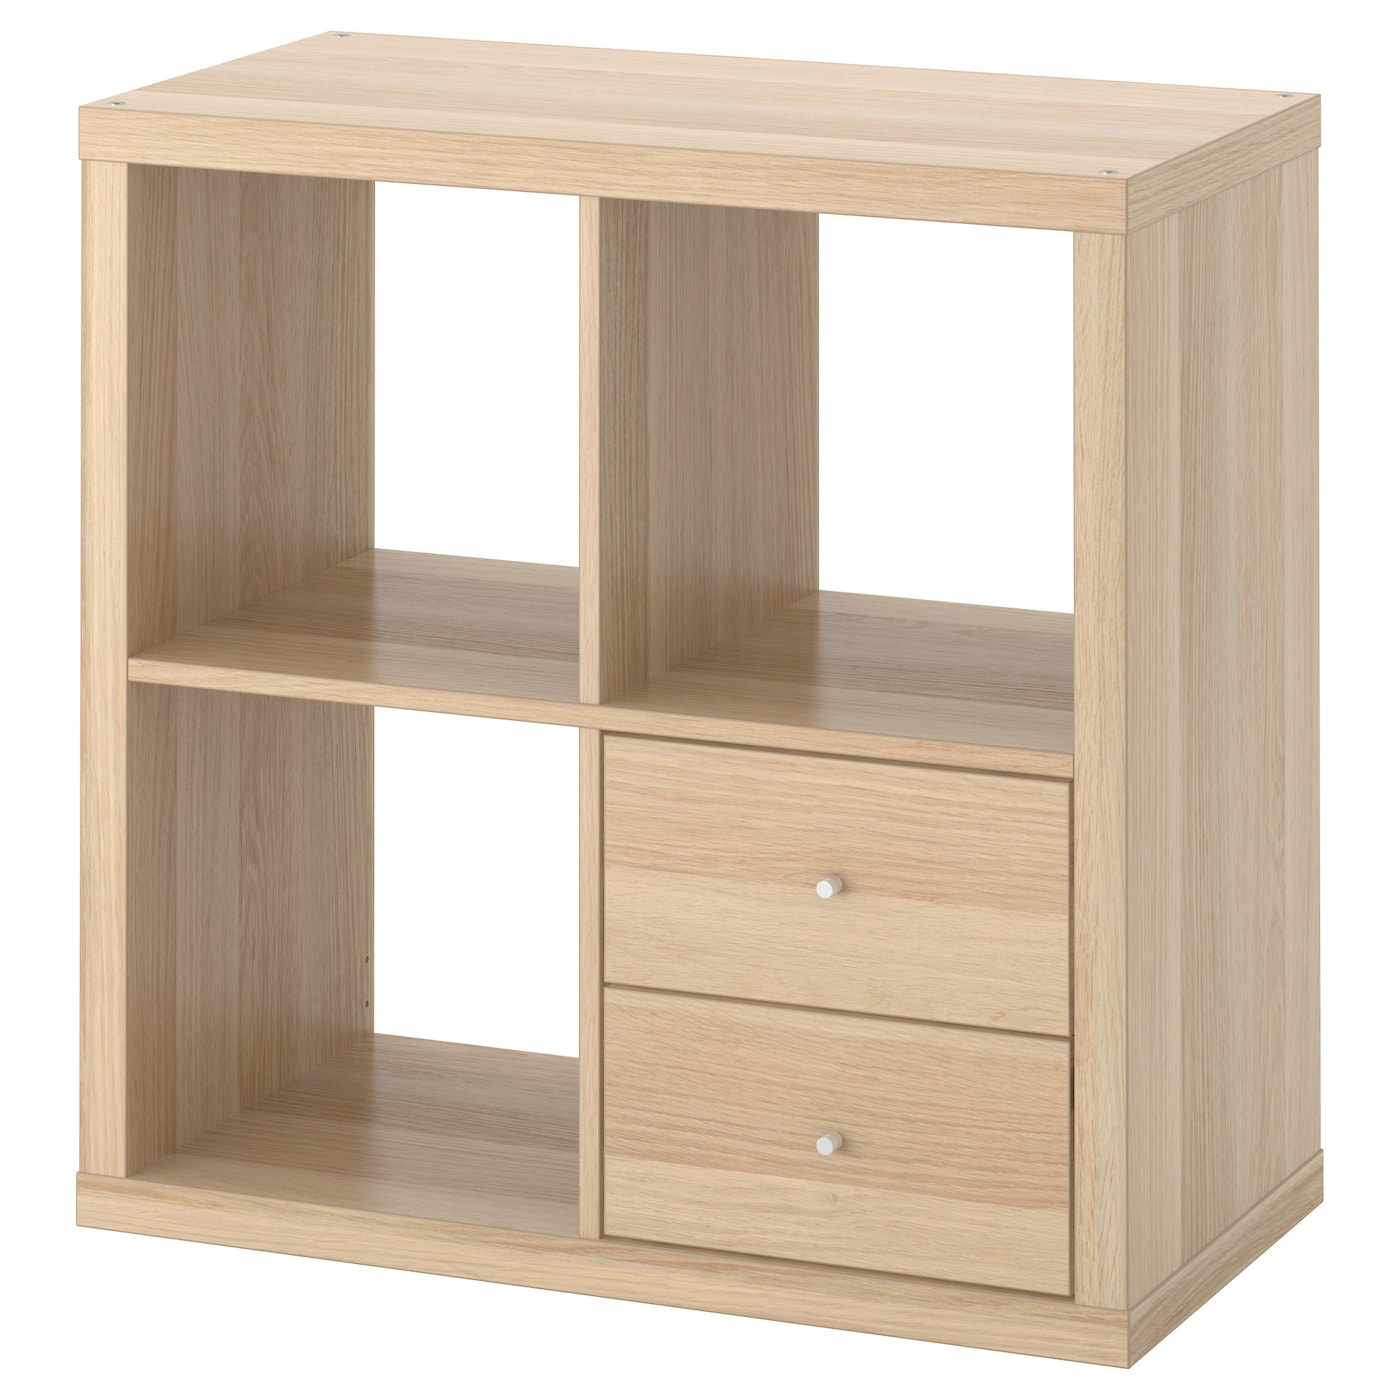 Kallax shelving unit with drawers white stained oak effect 77 x 77 cm ikea - Mobile kallax ikea ...